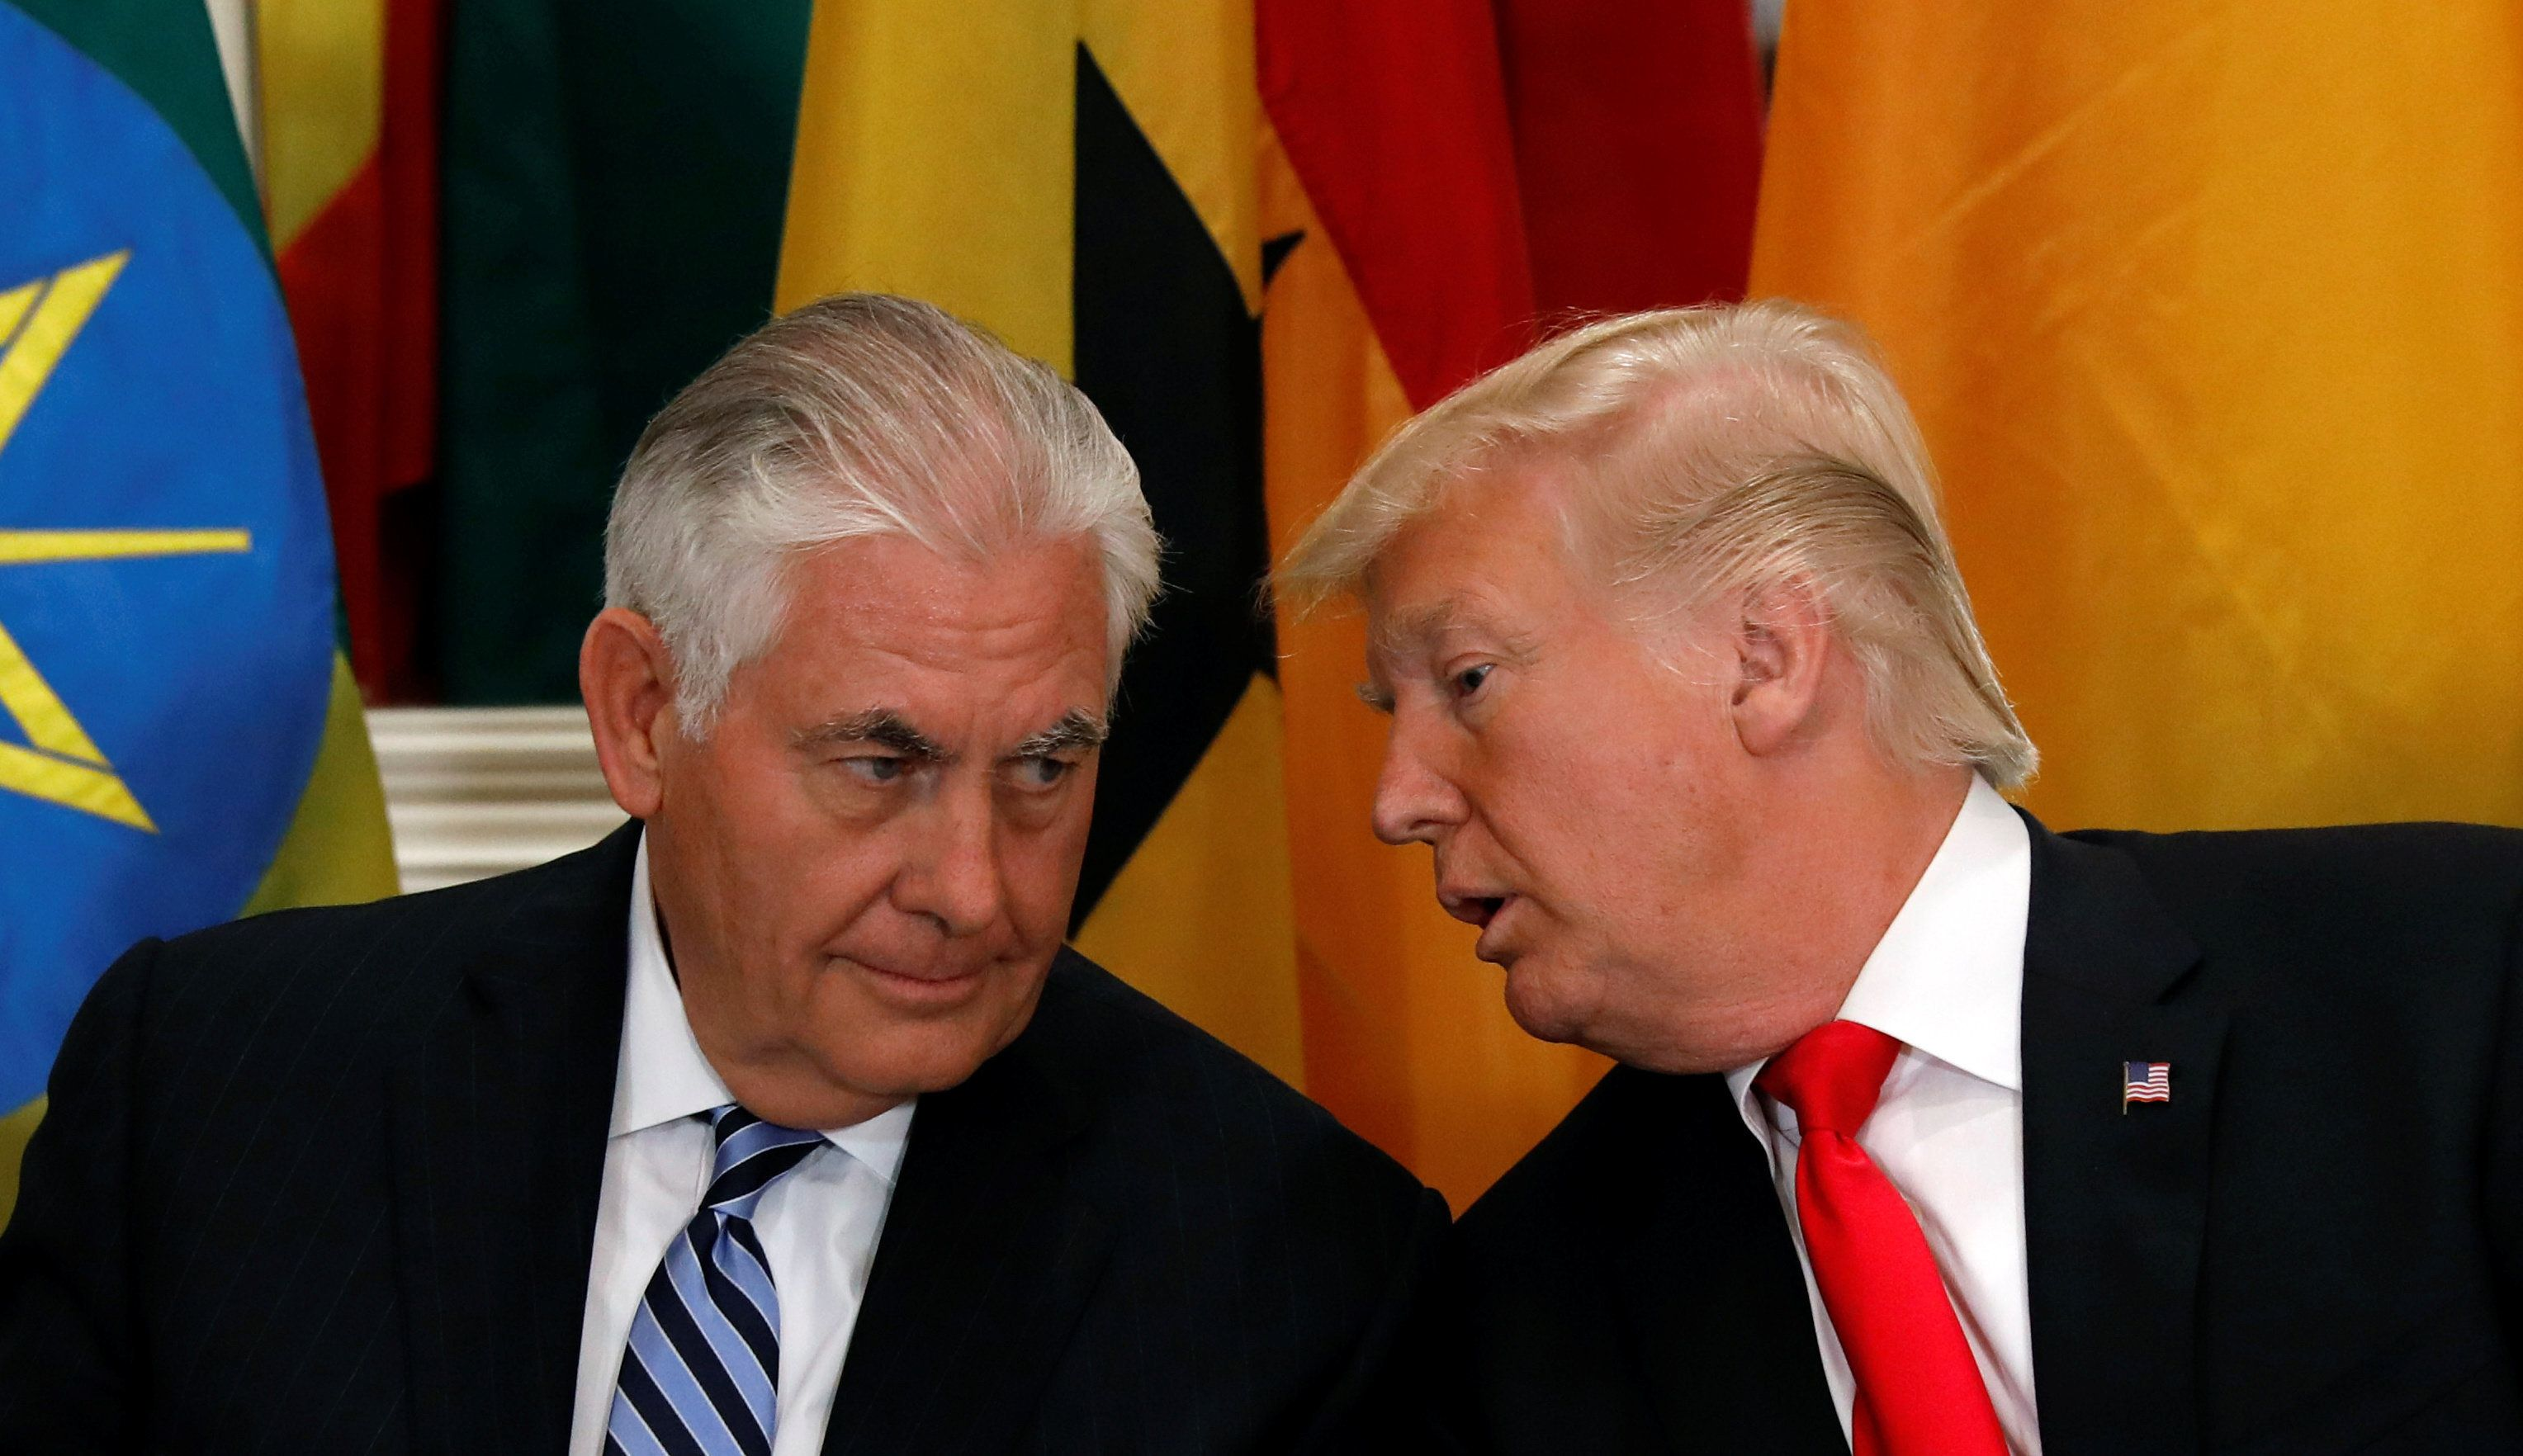 Tillerson defends his voice in the administration after Trump controversy